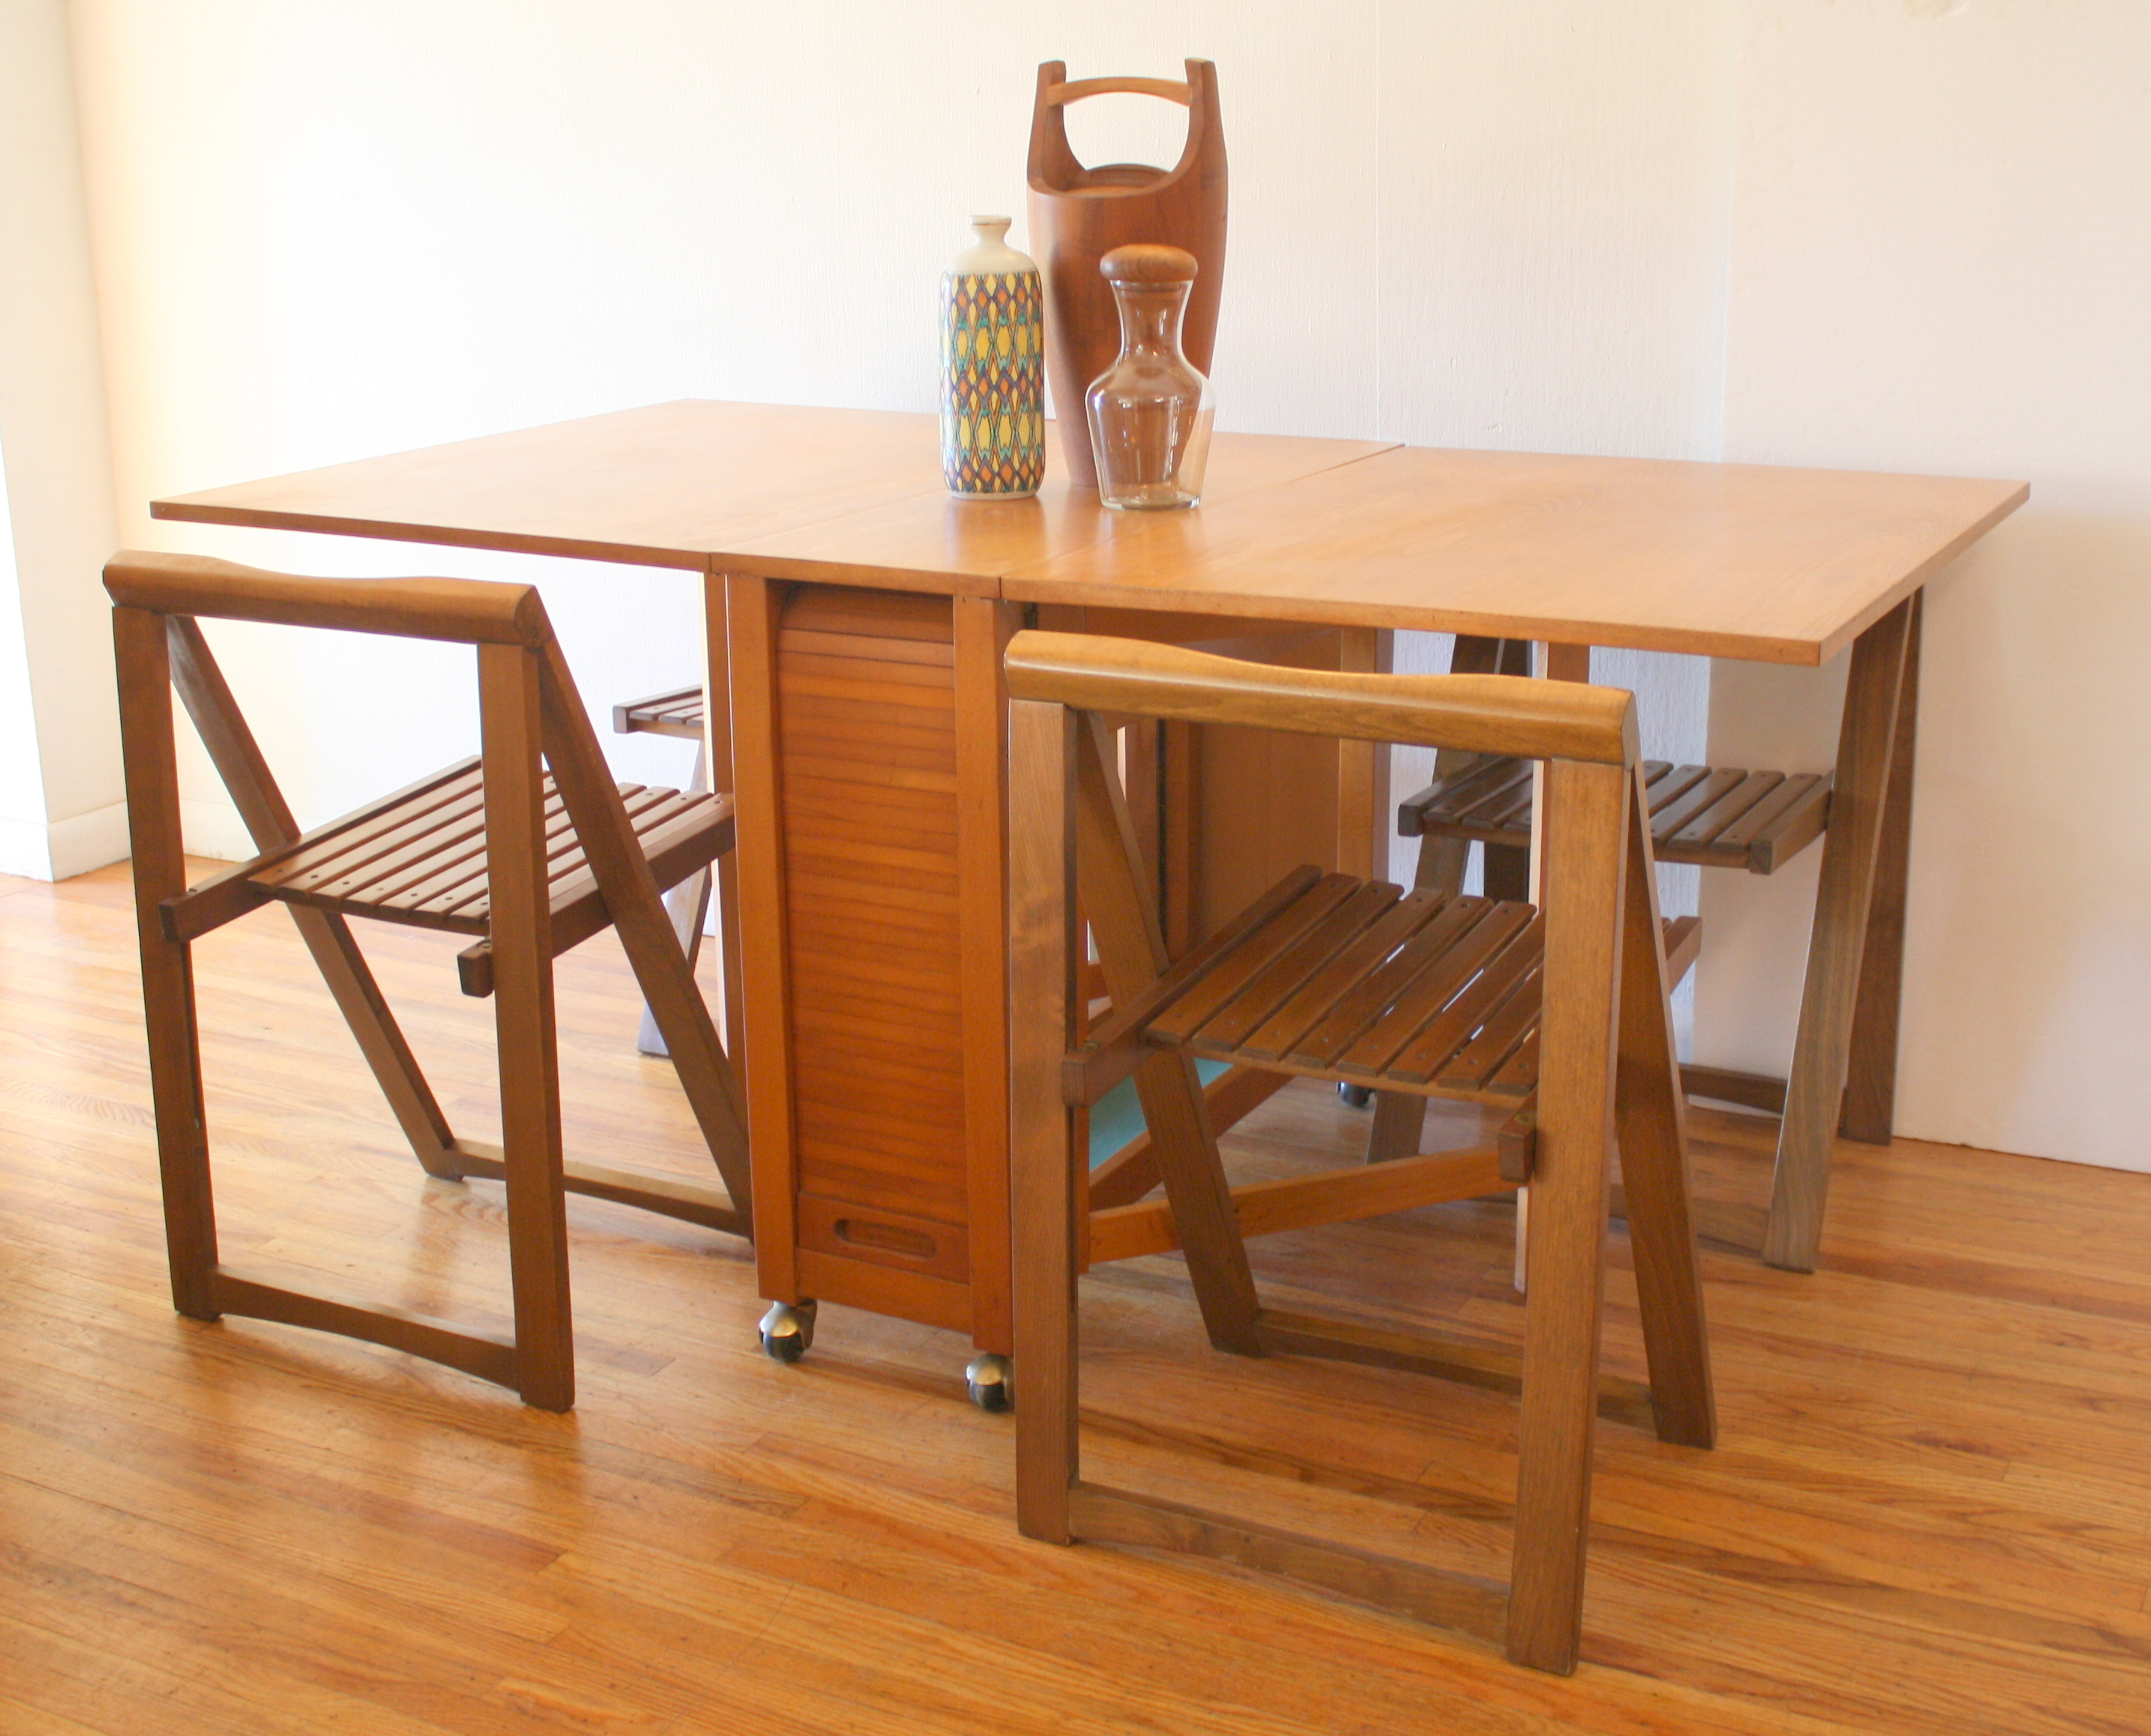 gateleg dining table with chairs 1